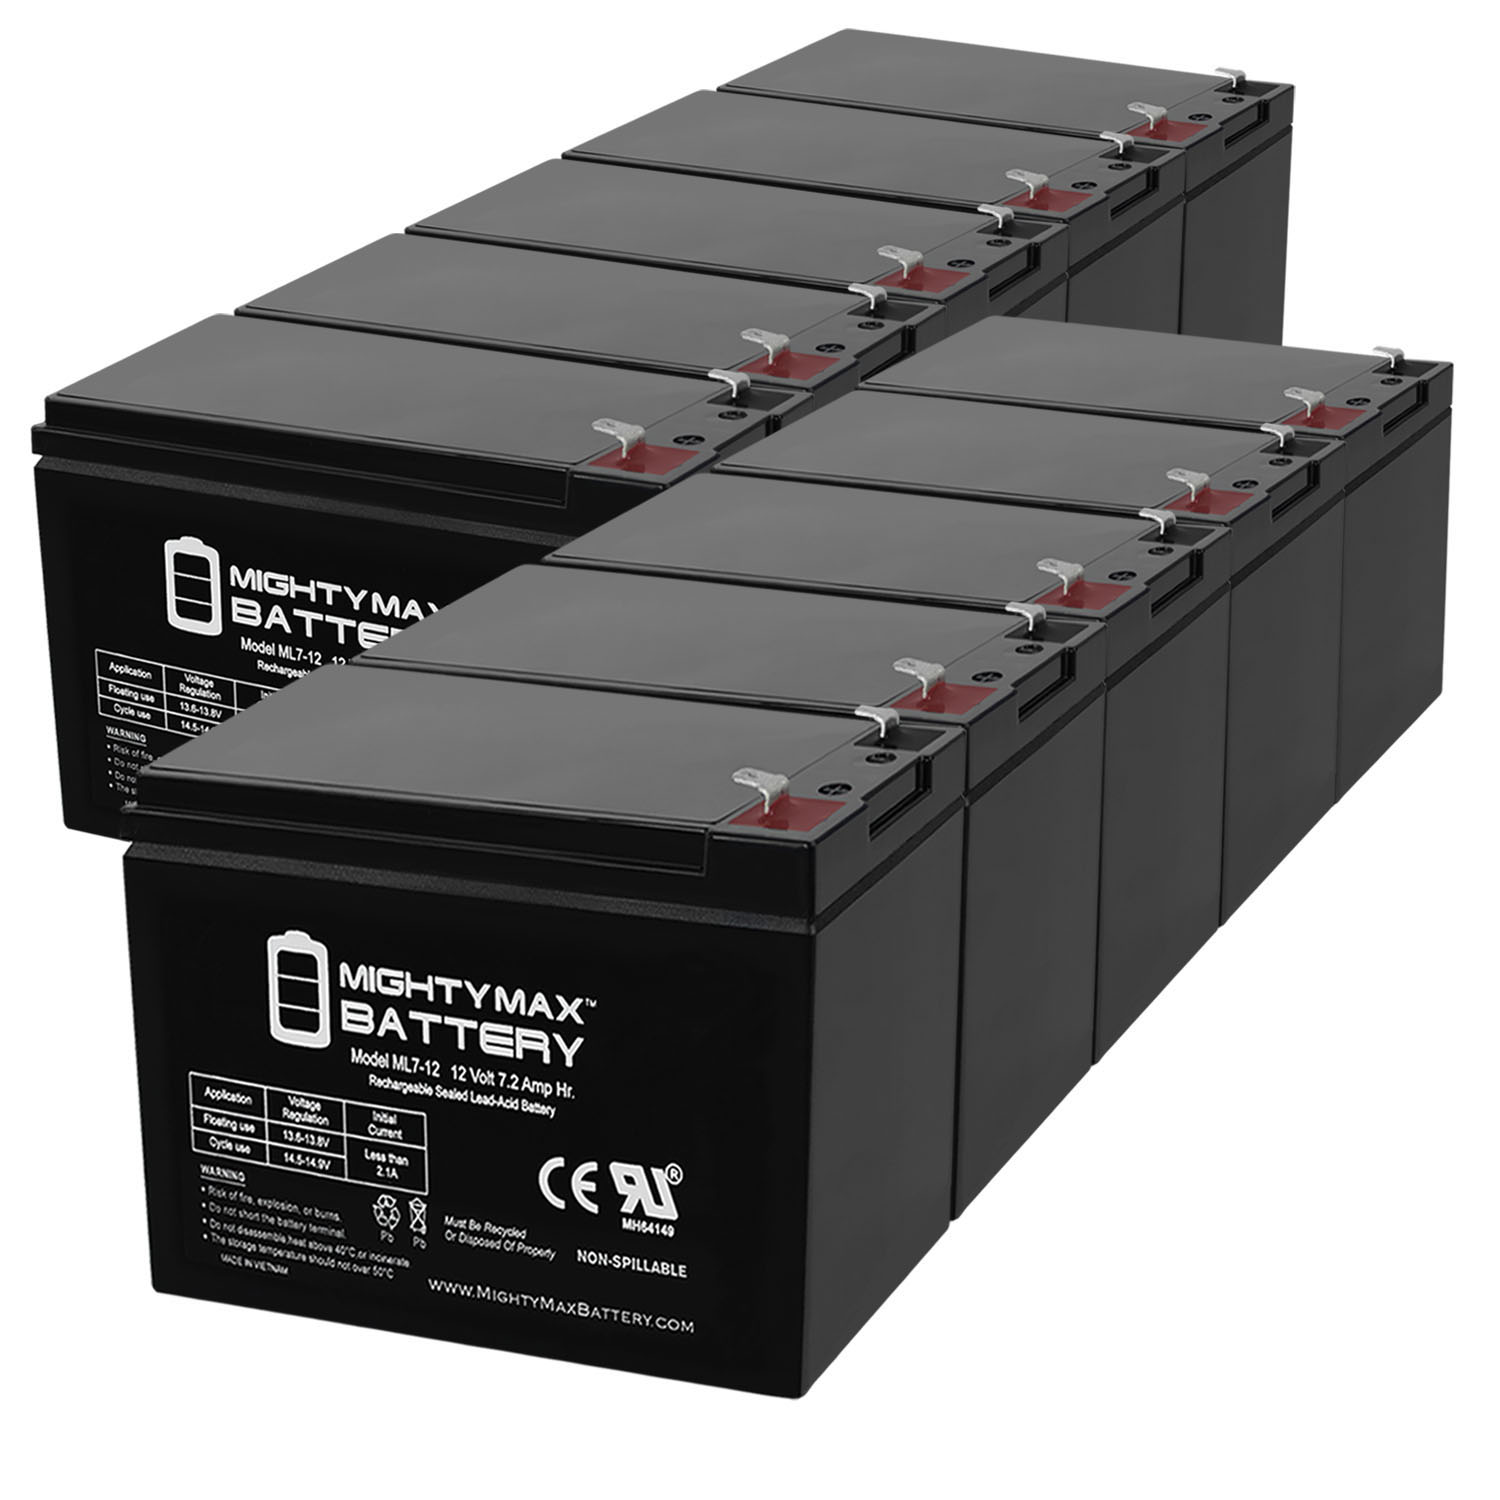 BATTERY REPL. LEOCH DJW12-7 12V 7AH .187 INCH FASTON - 10 Pack